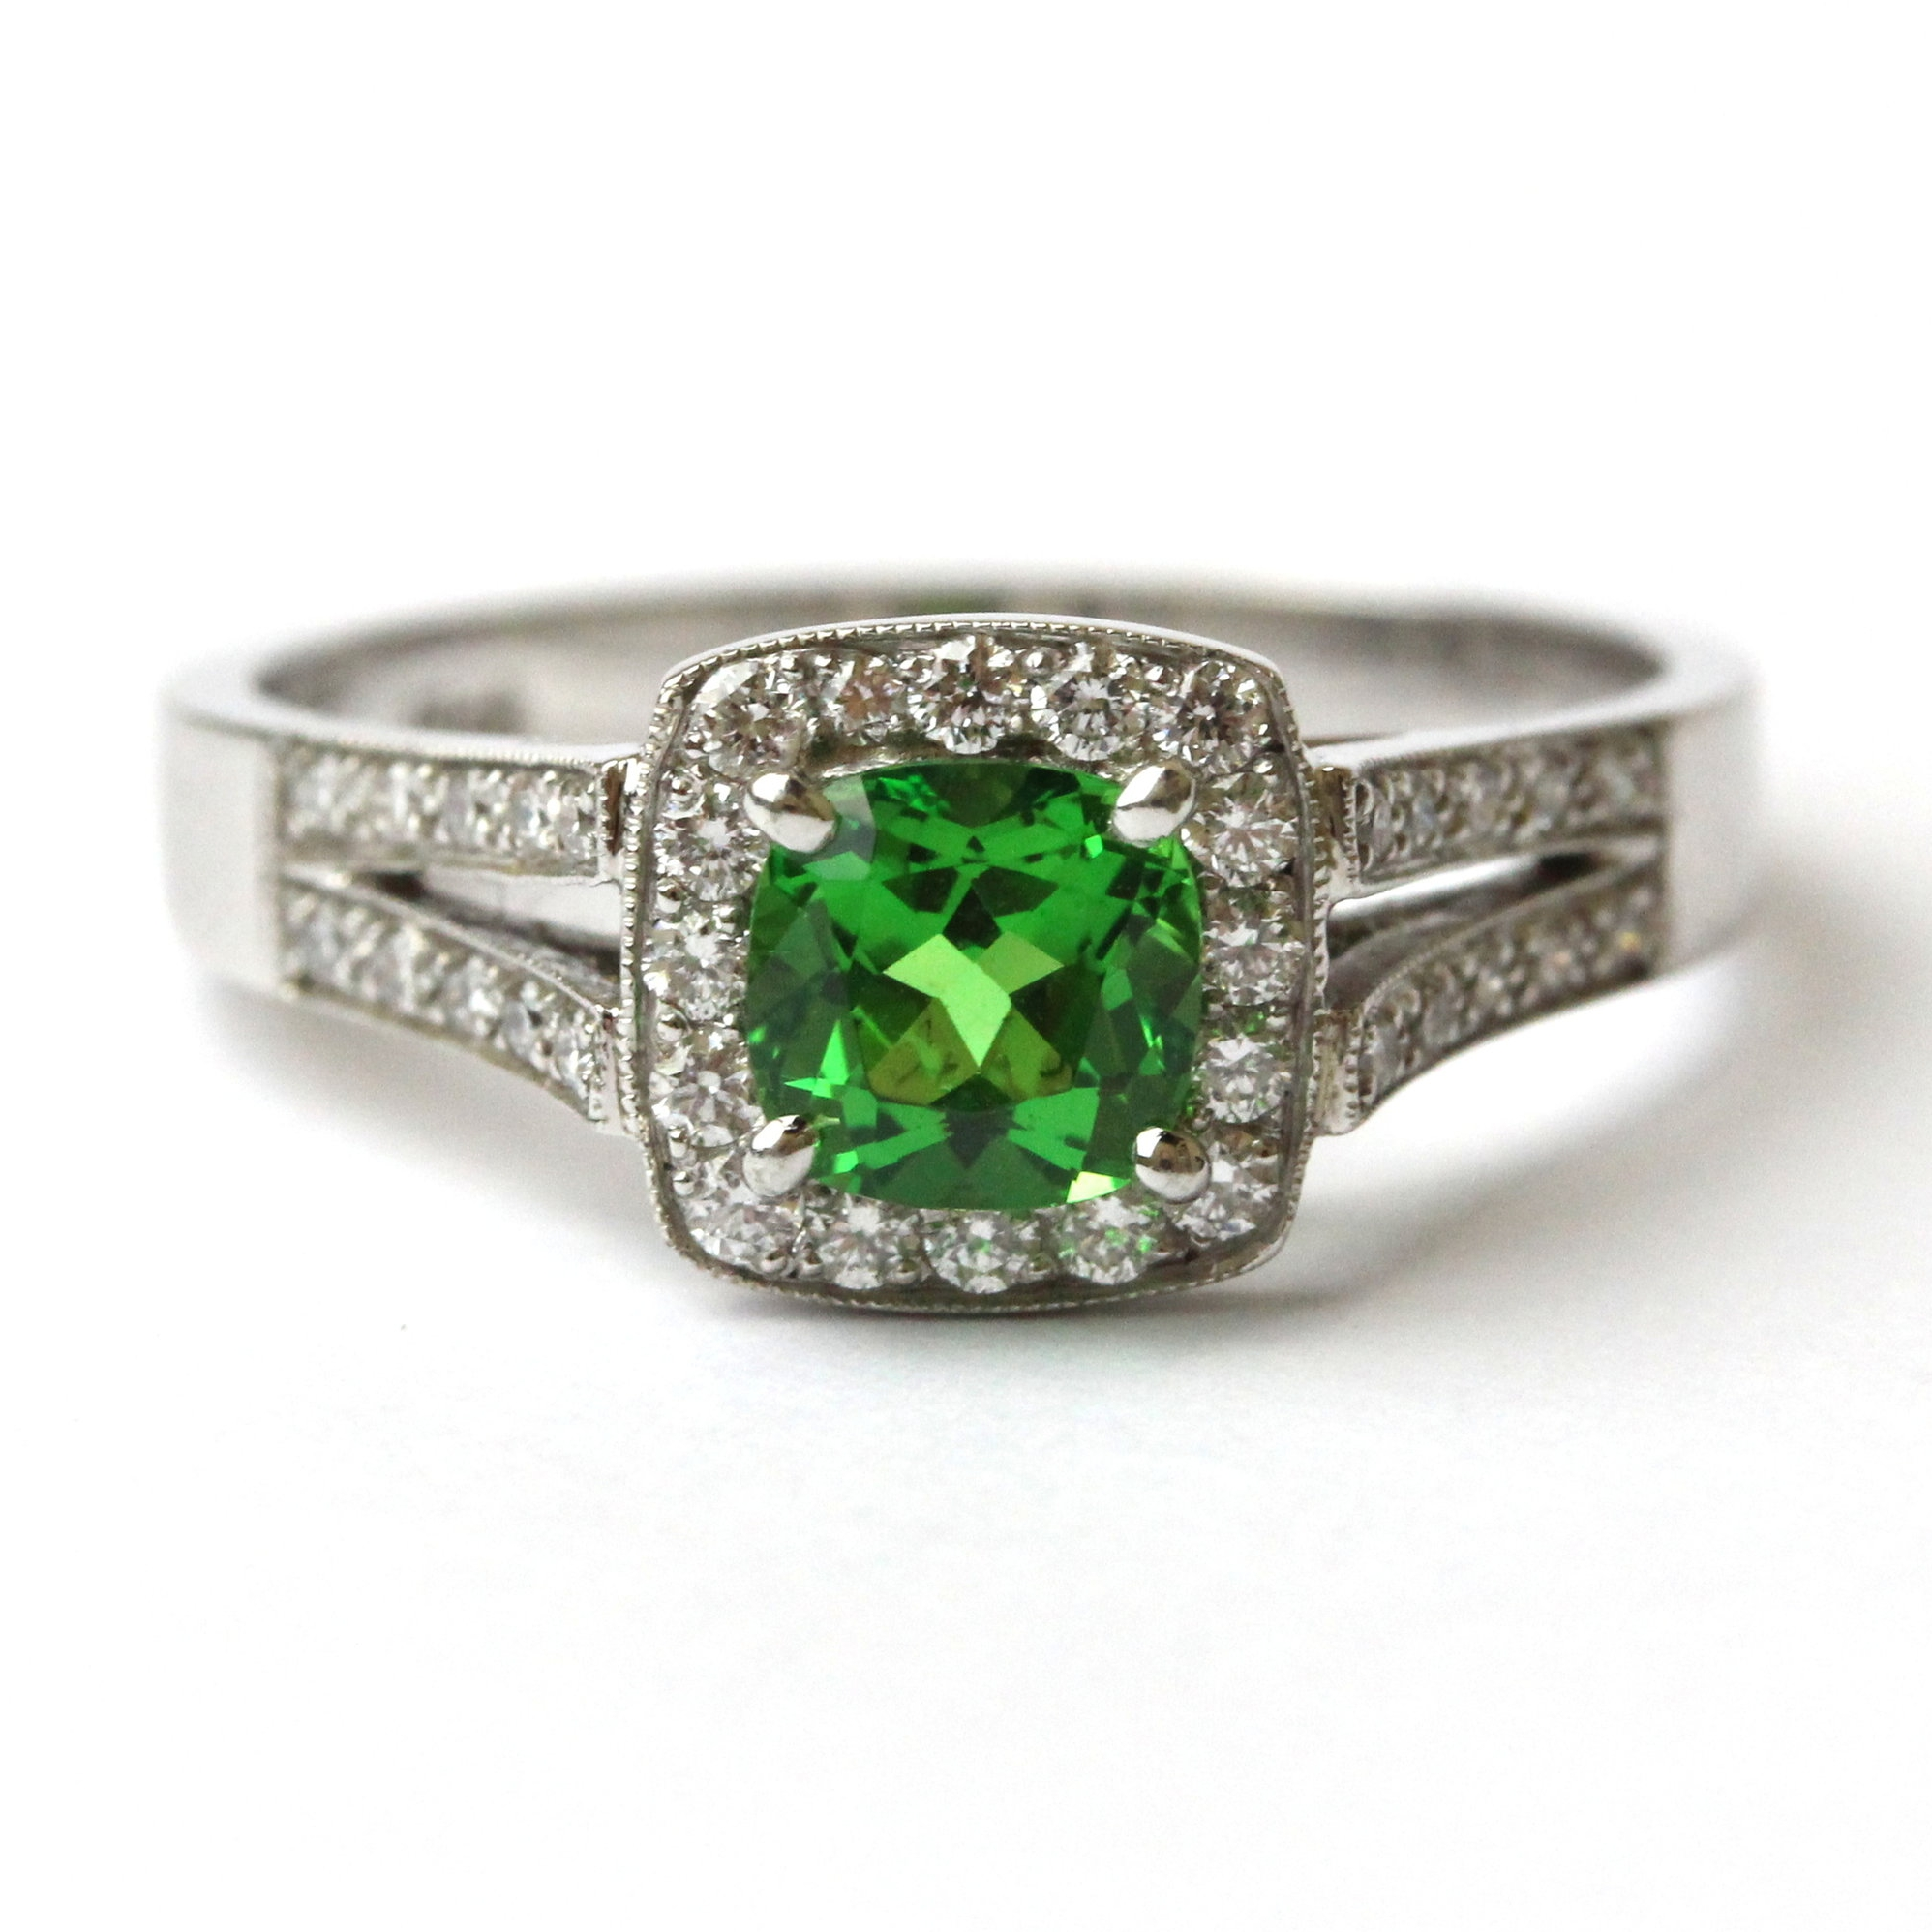 Cushion cut tsavorite garnet set in white gold ring with diamond halo and shoulders.